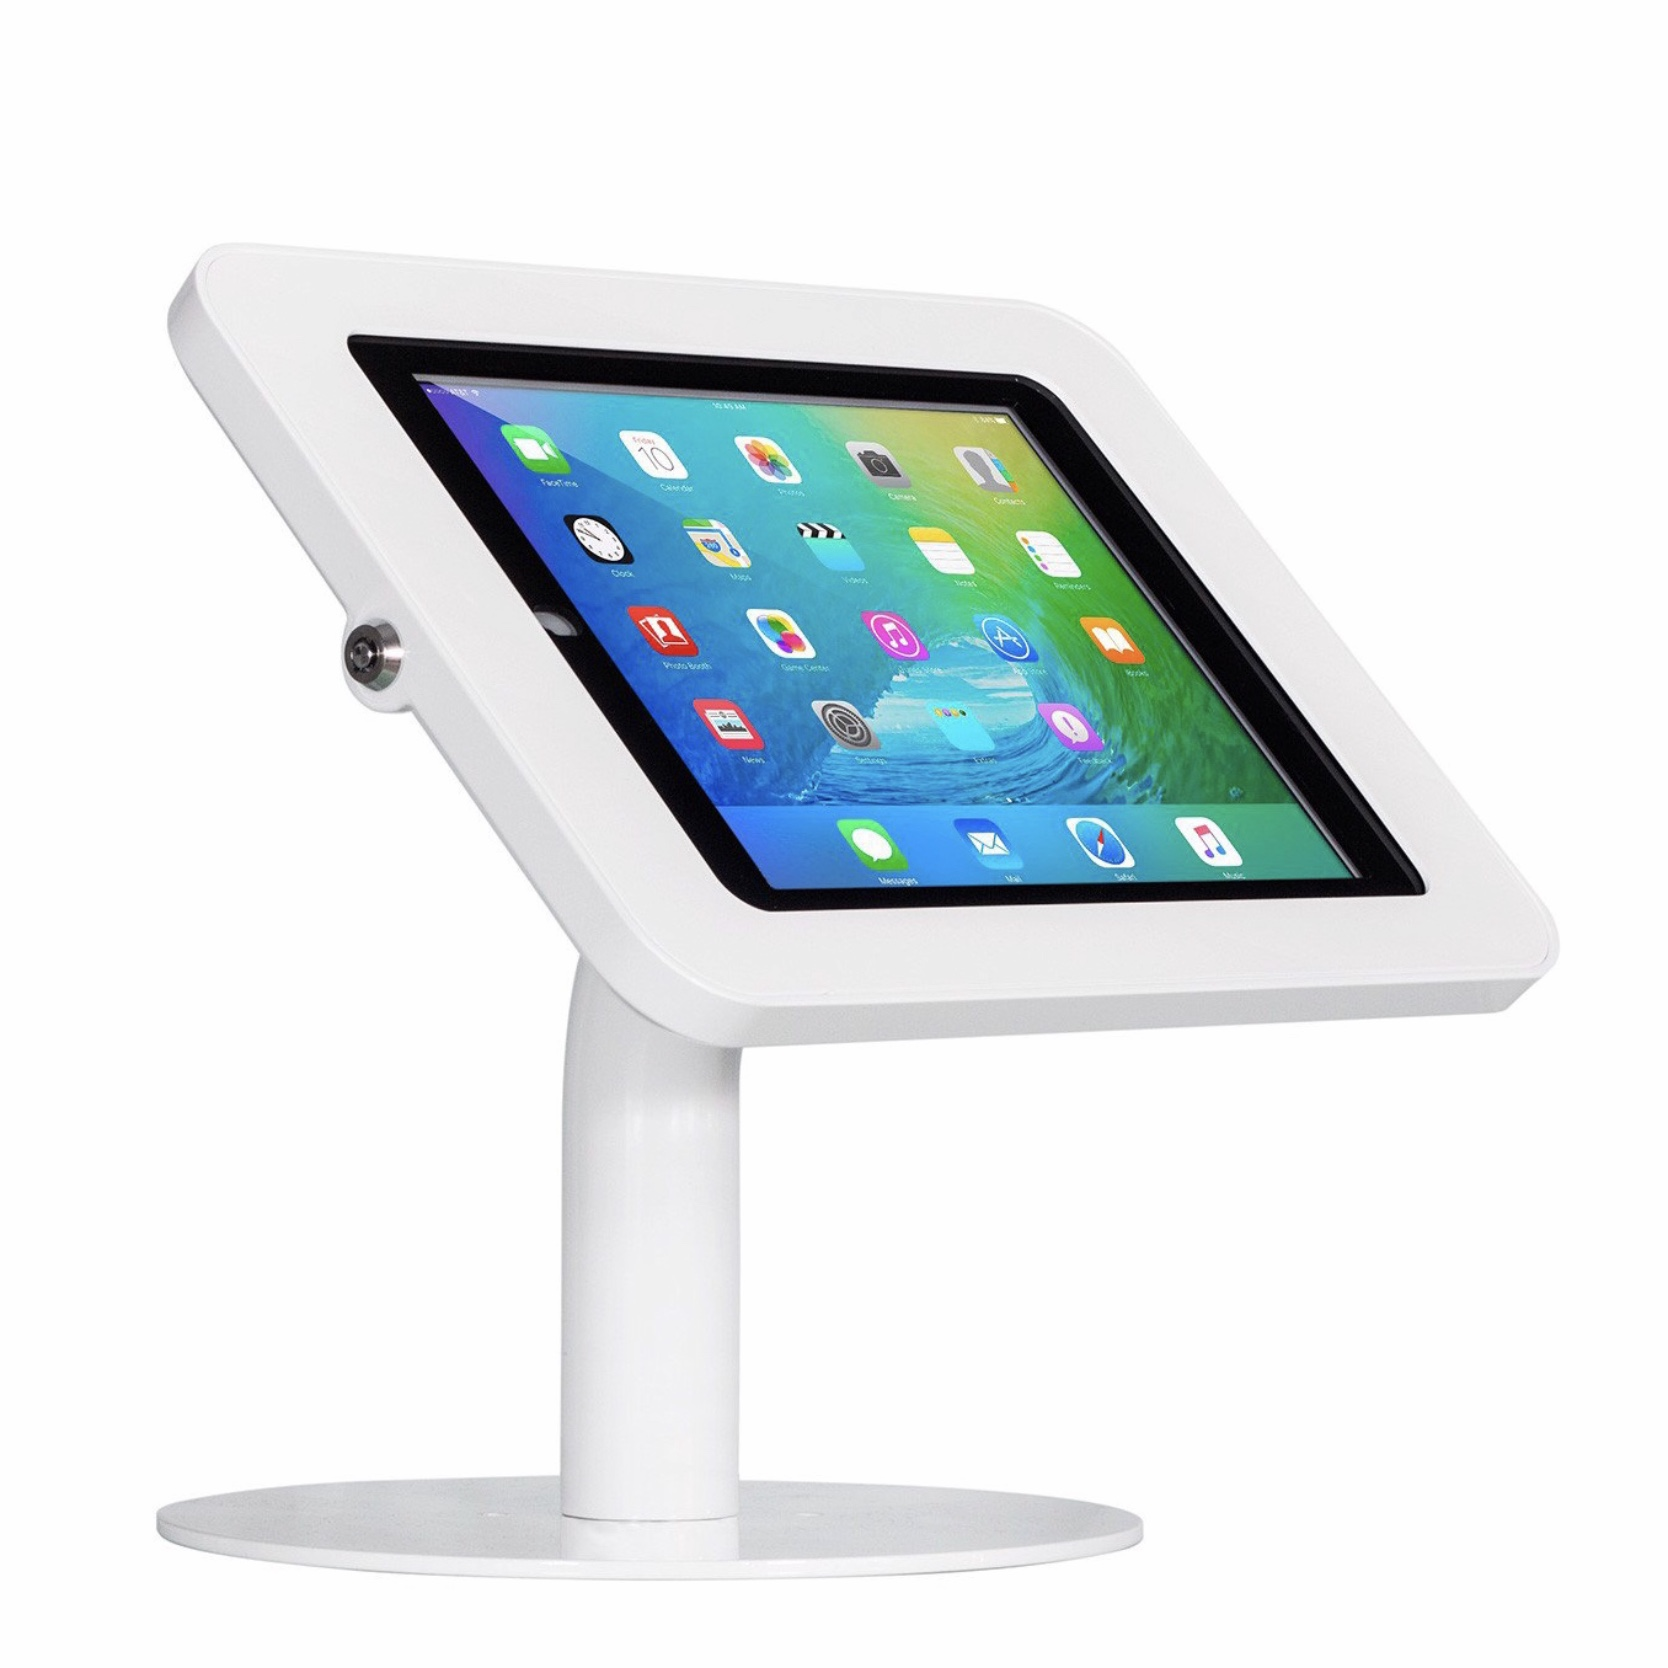 Borne de presentation de table ipad 9.7 pouces New Fullpad Blanc